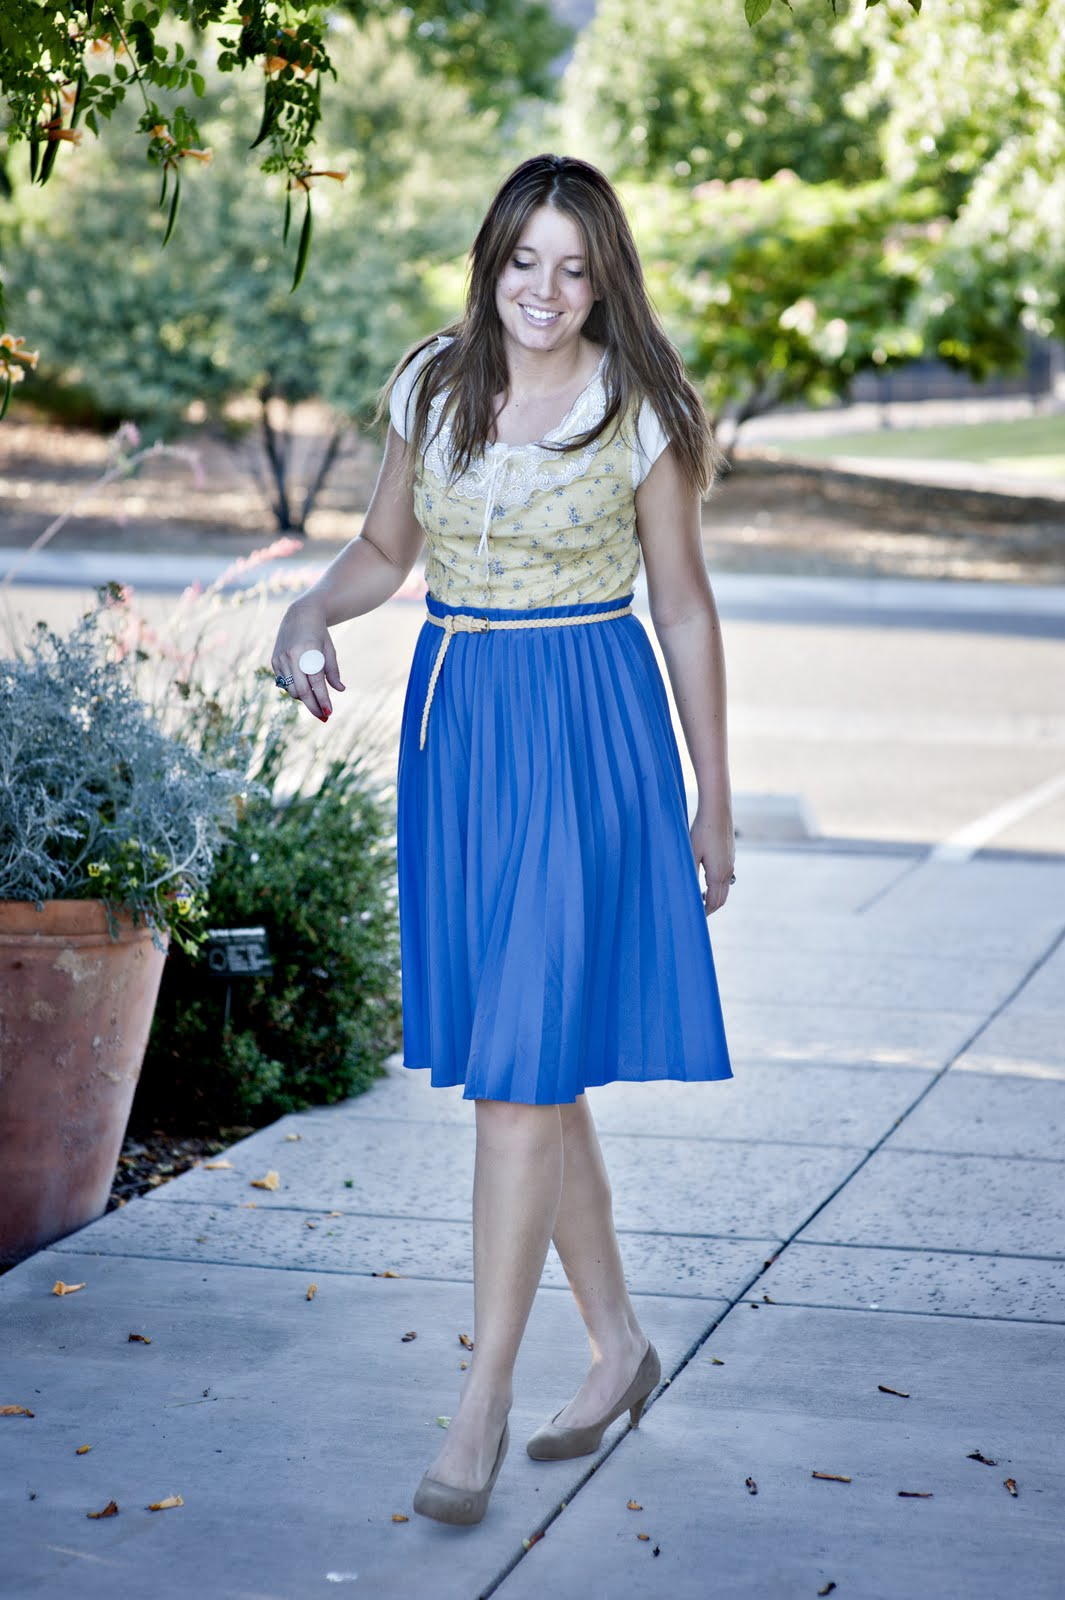 Blue Skirt, Brown Heels